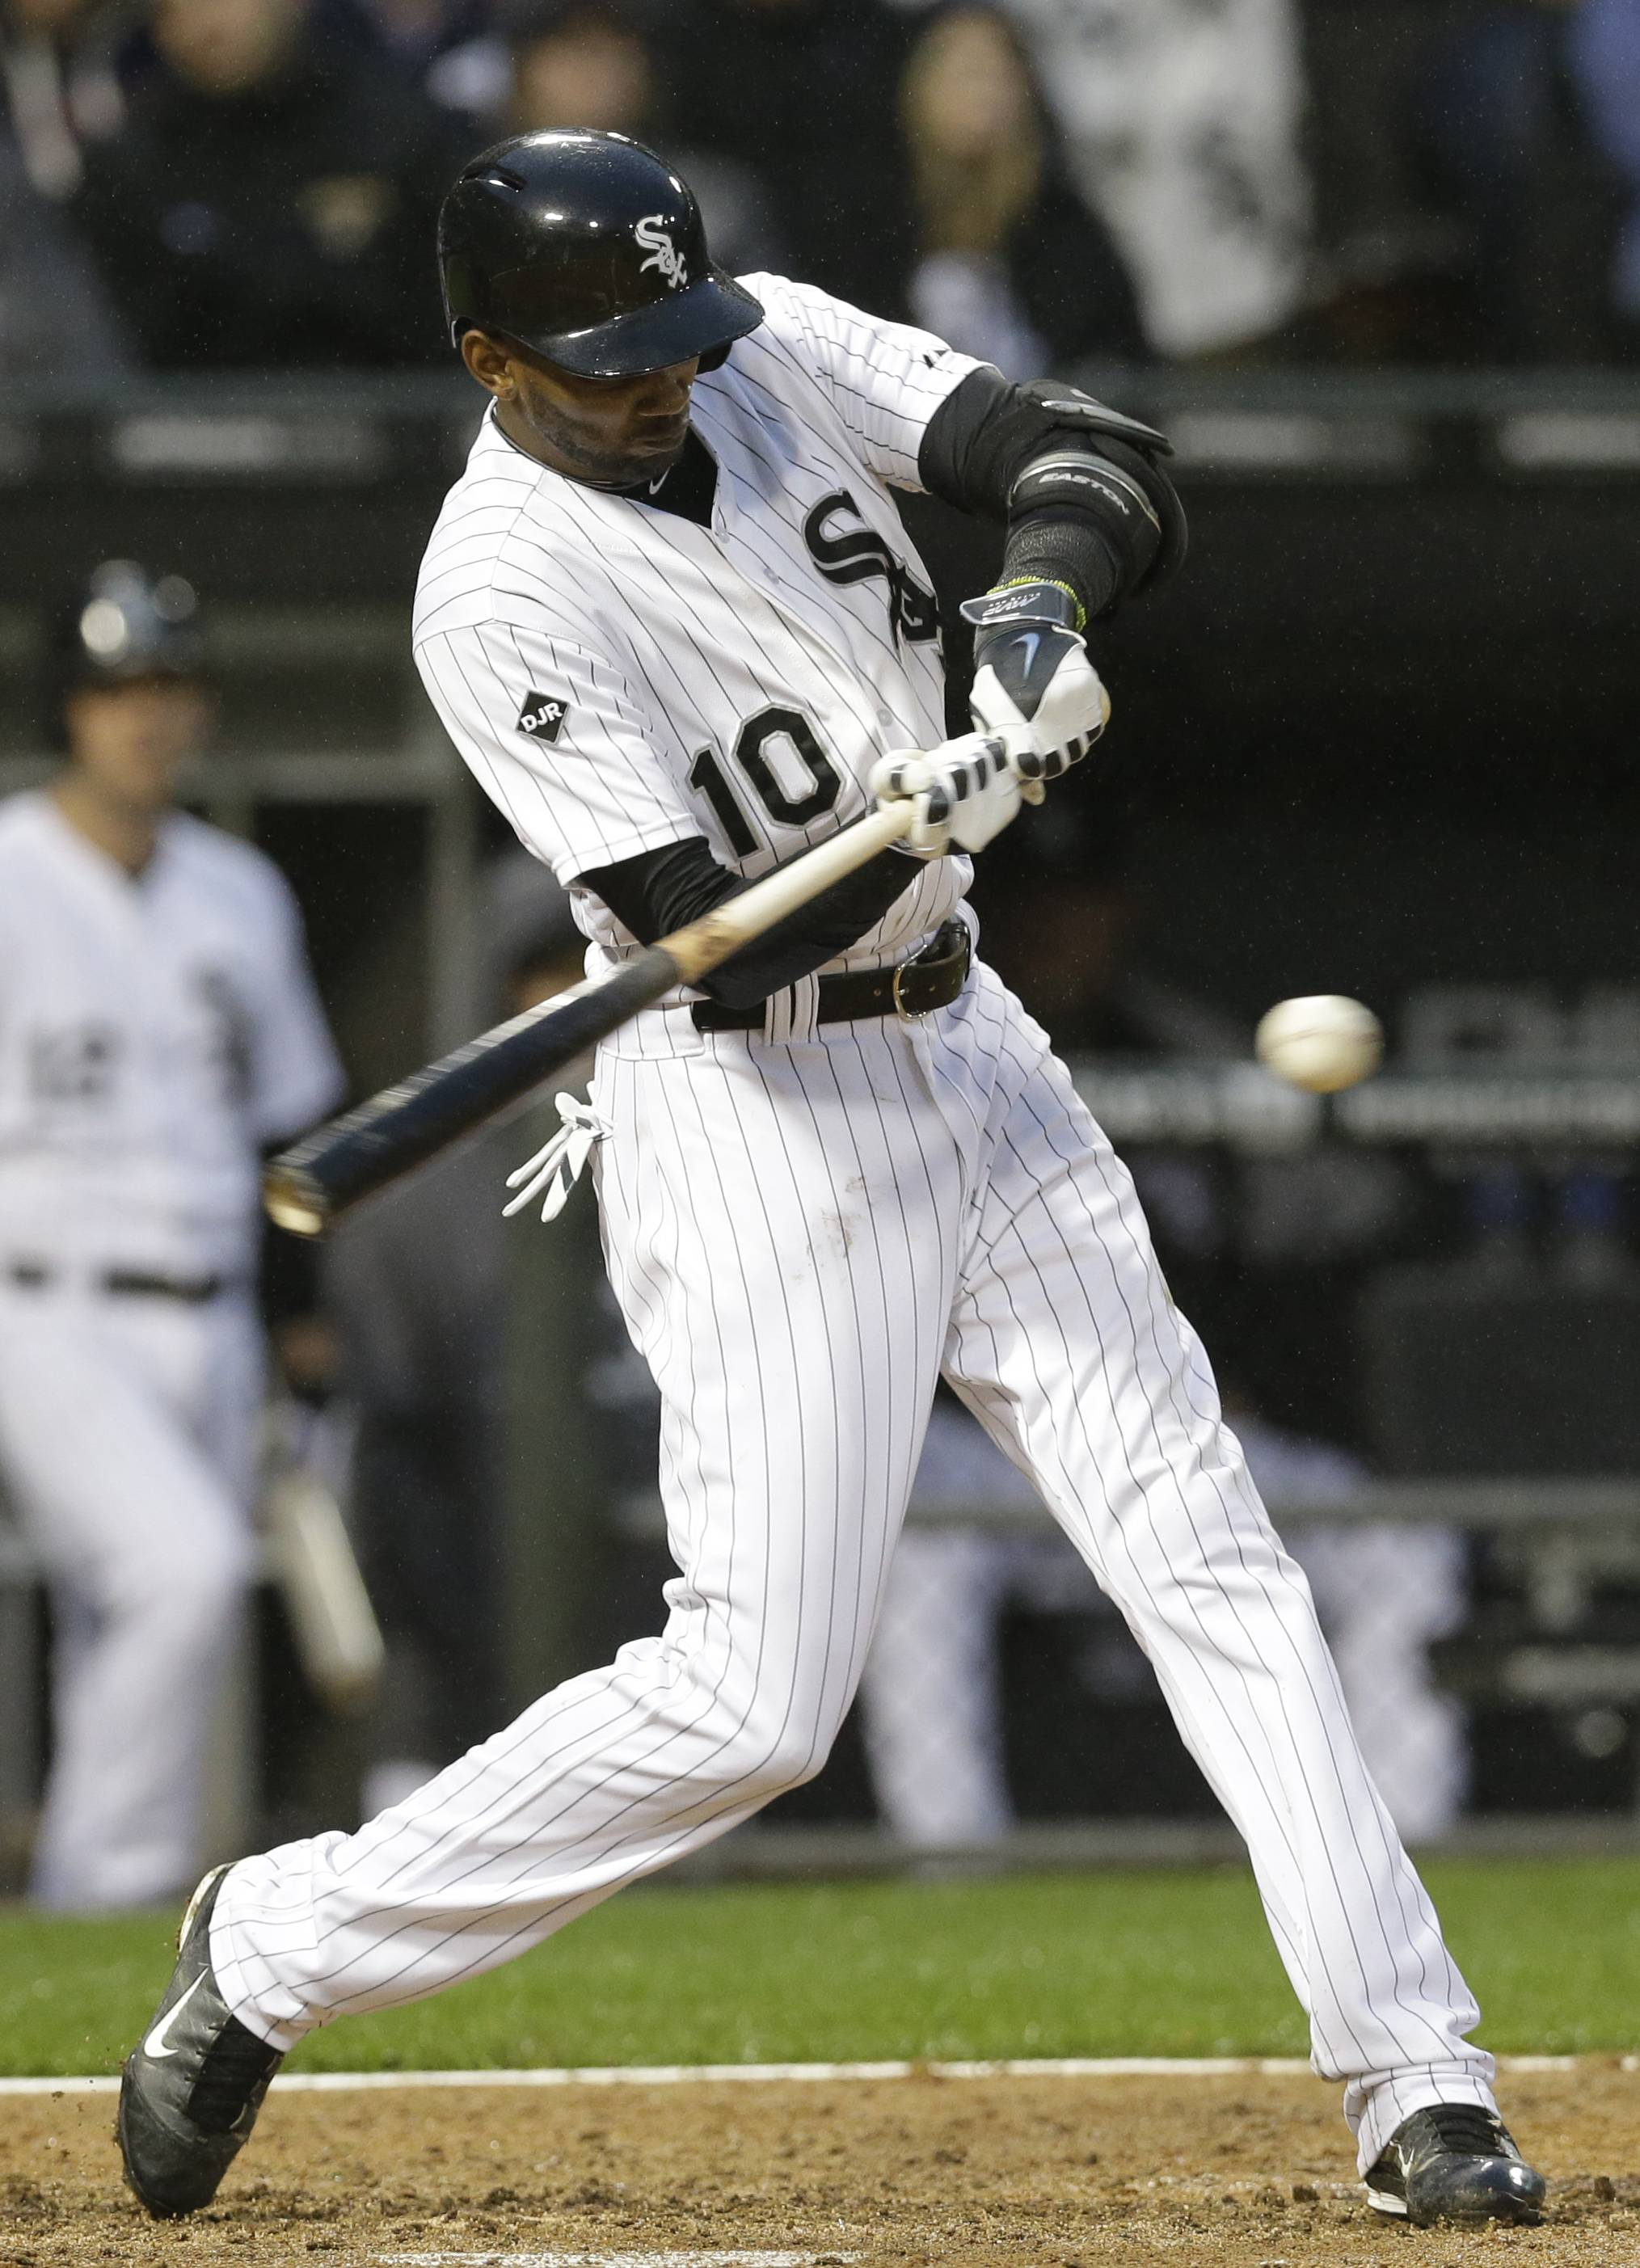 Chicago White Sox's Alexei Ramirez hits a two-run single against the Los Angeles Angels during the fourth inning of a baseball game in Chicago on Wednesday, July 2, 2014. (AP Photo/Nam Y. Huh)